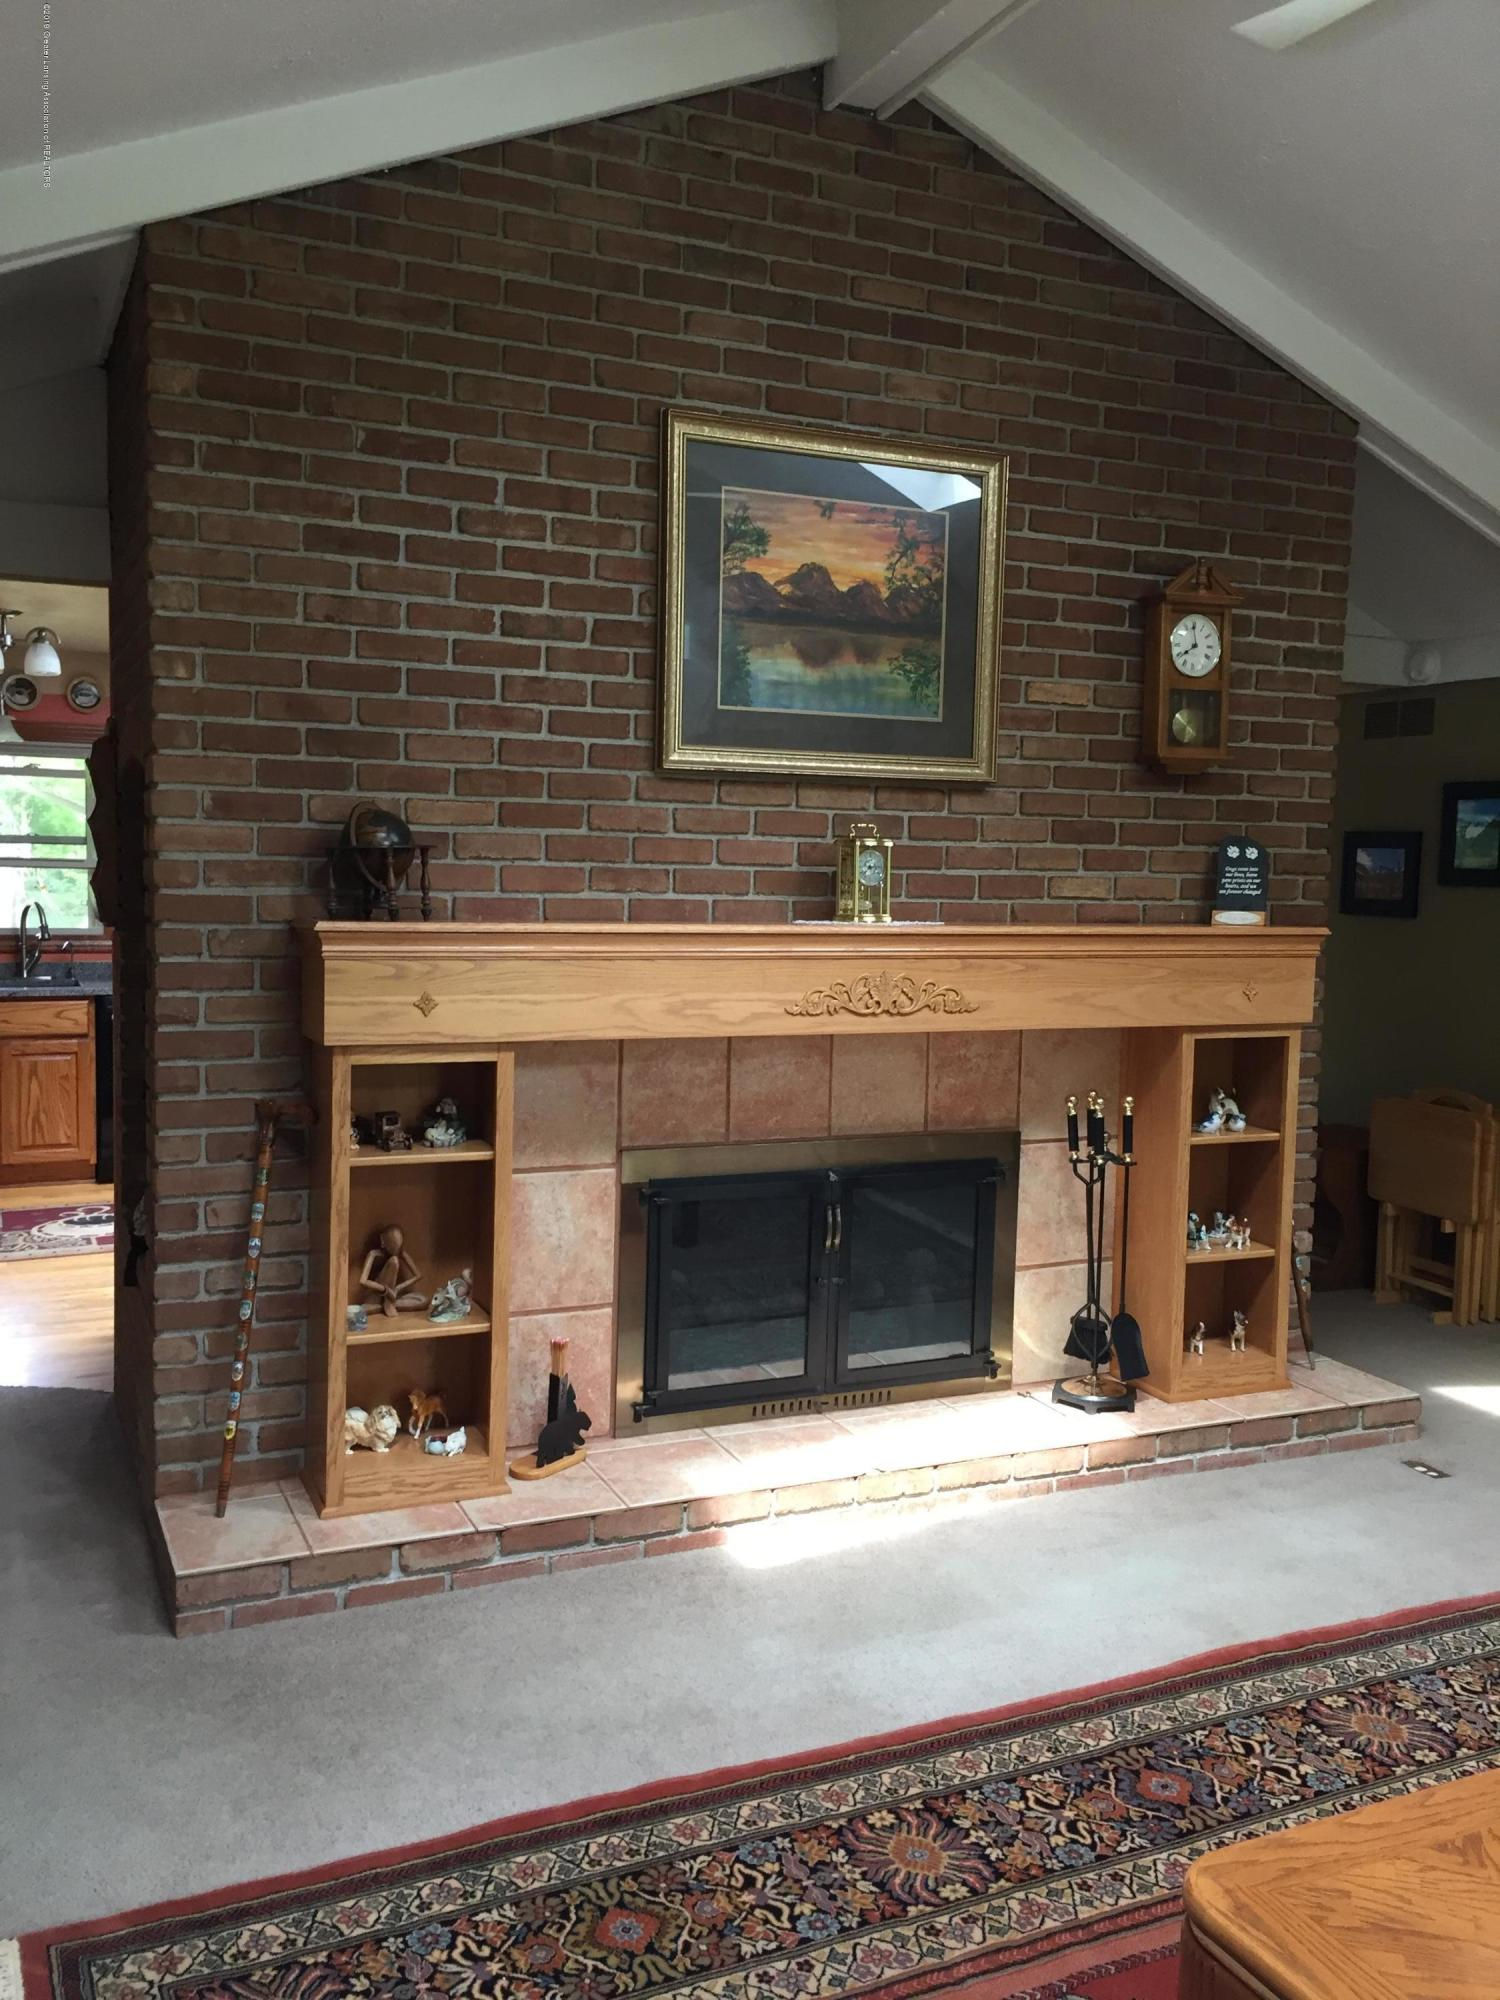 805 E Dill Dr - Fireplace Full view - Daytime - 30